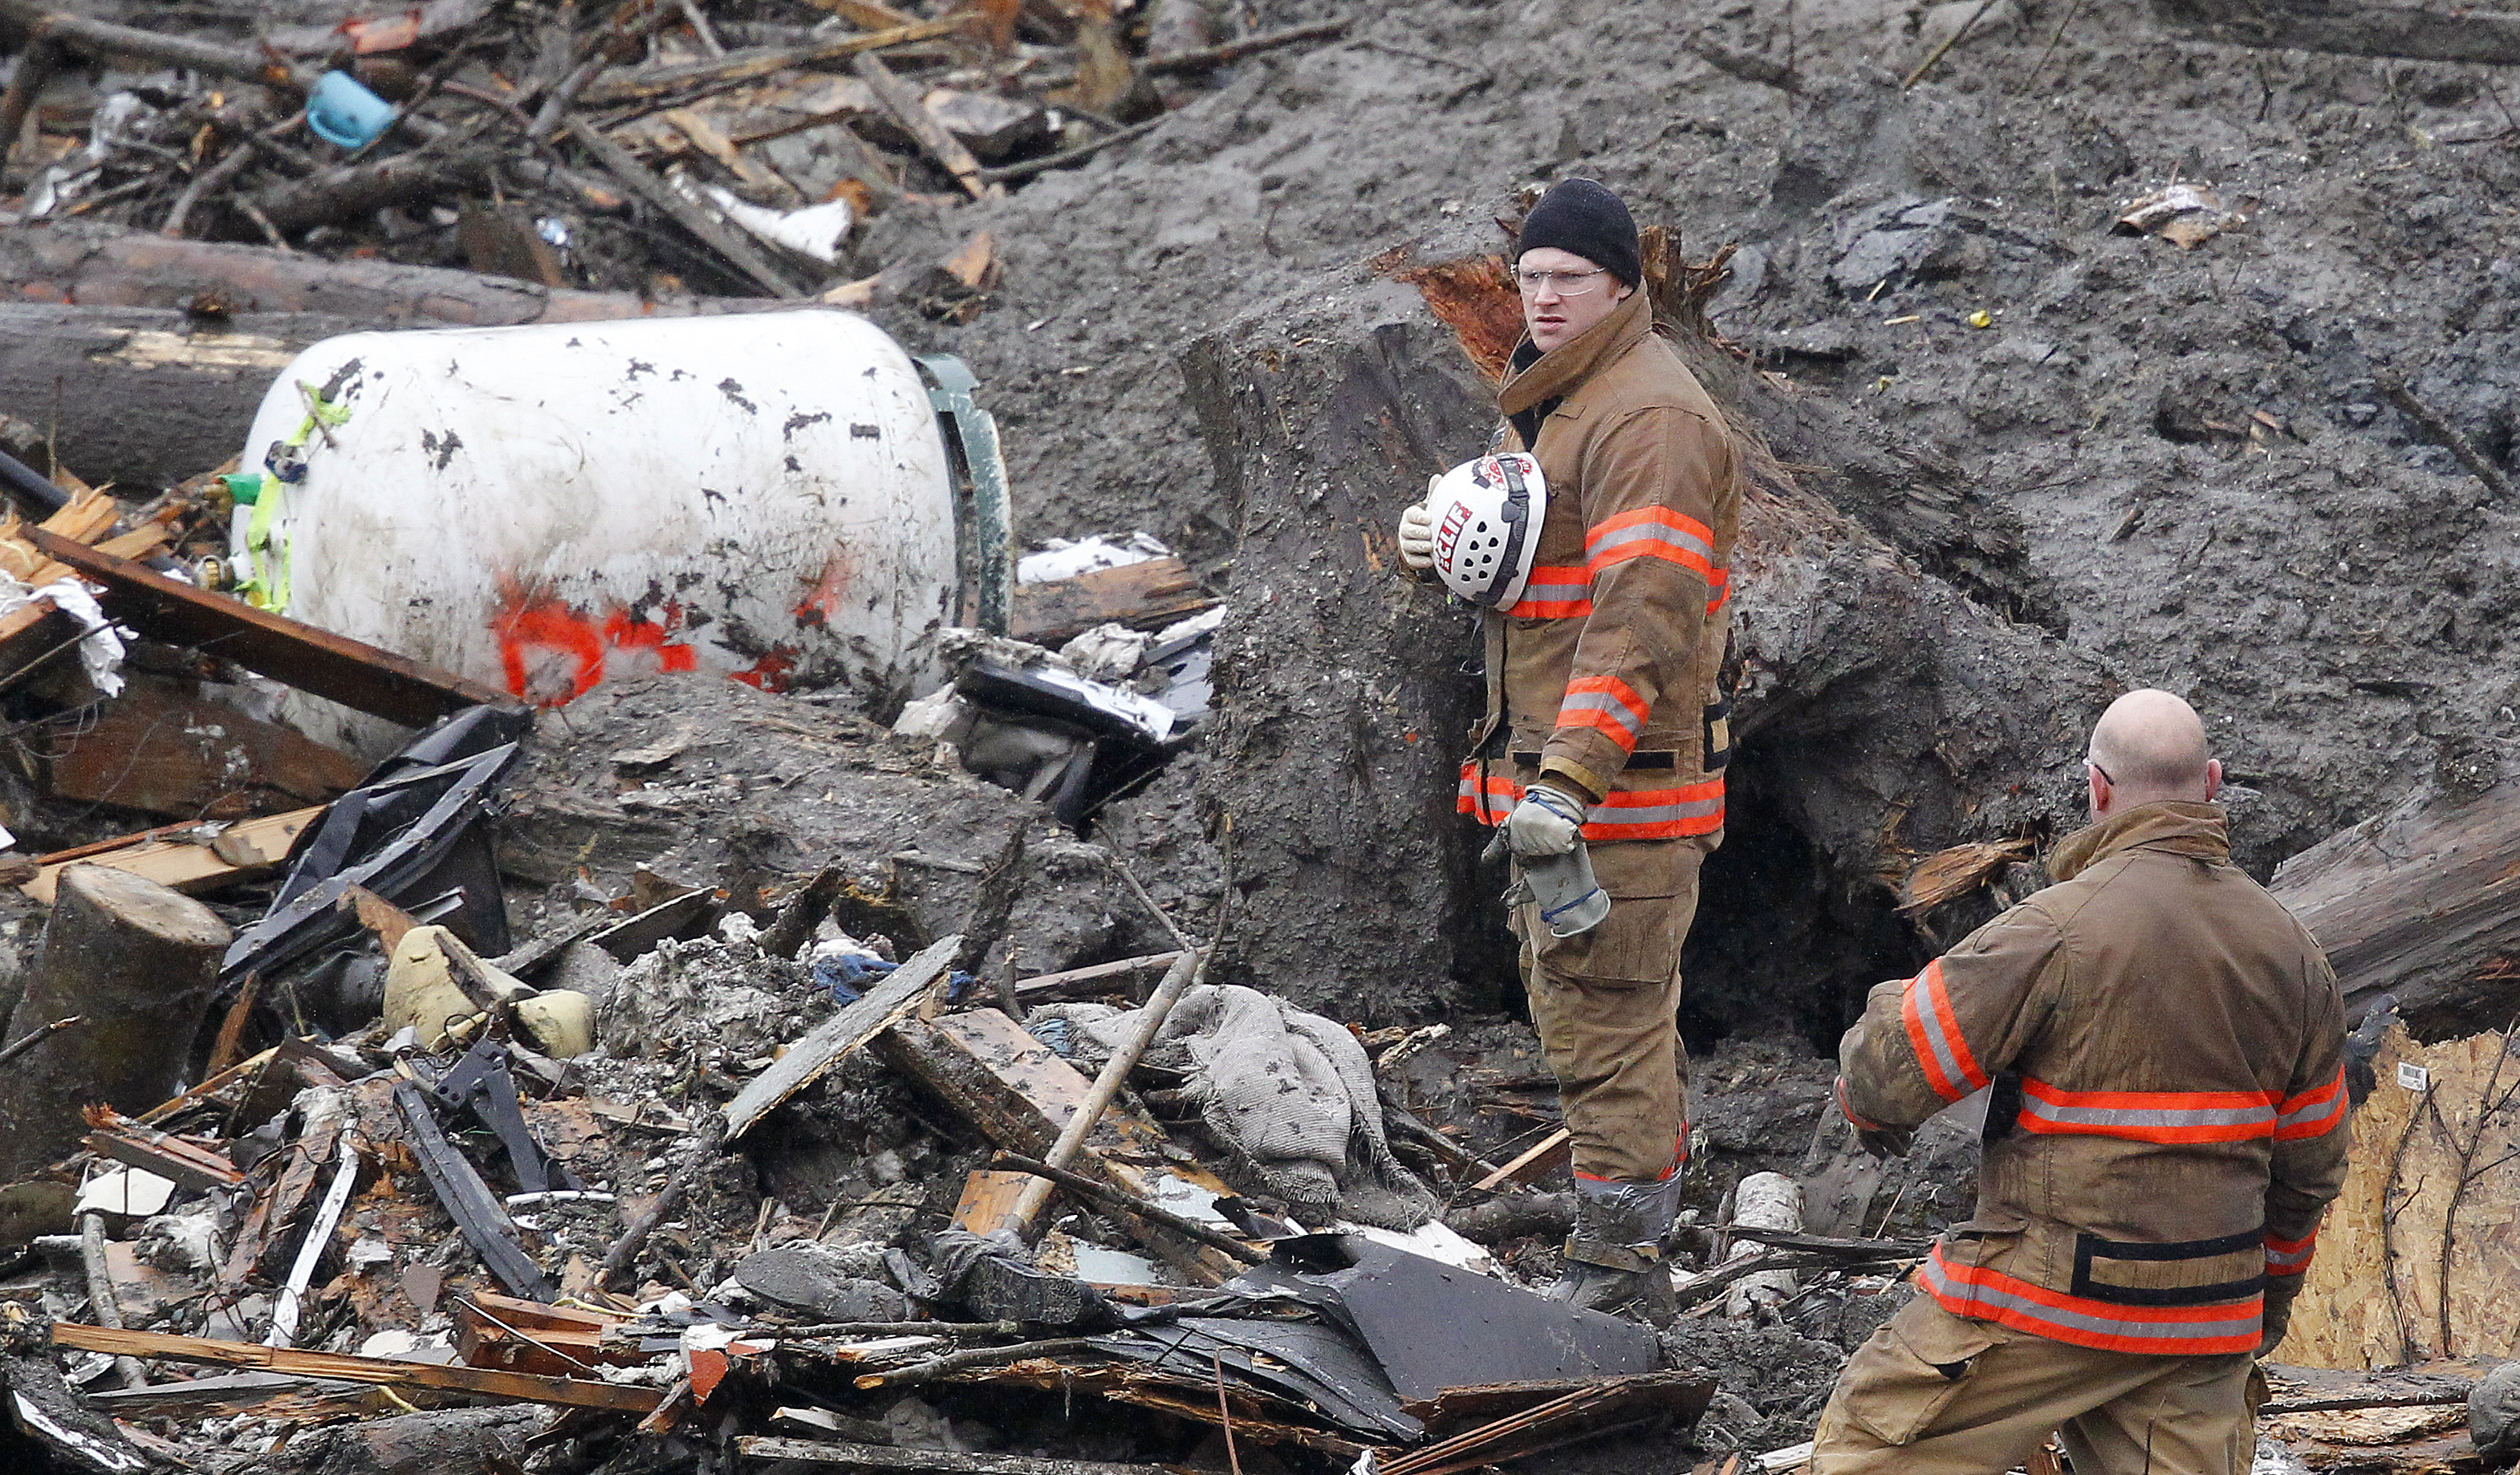 Searchers pause for a moment of silence at the scene of a deadly mudslide Saturday, March 29, 2014, in Oso, Wa.